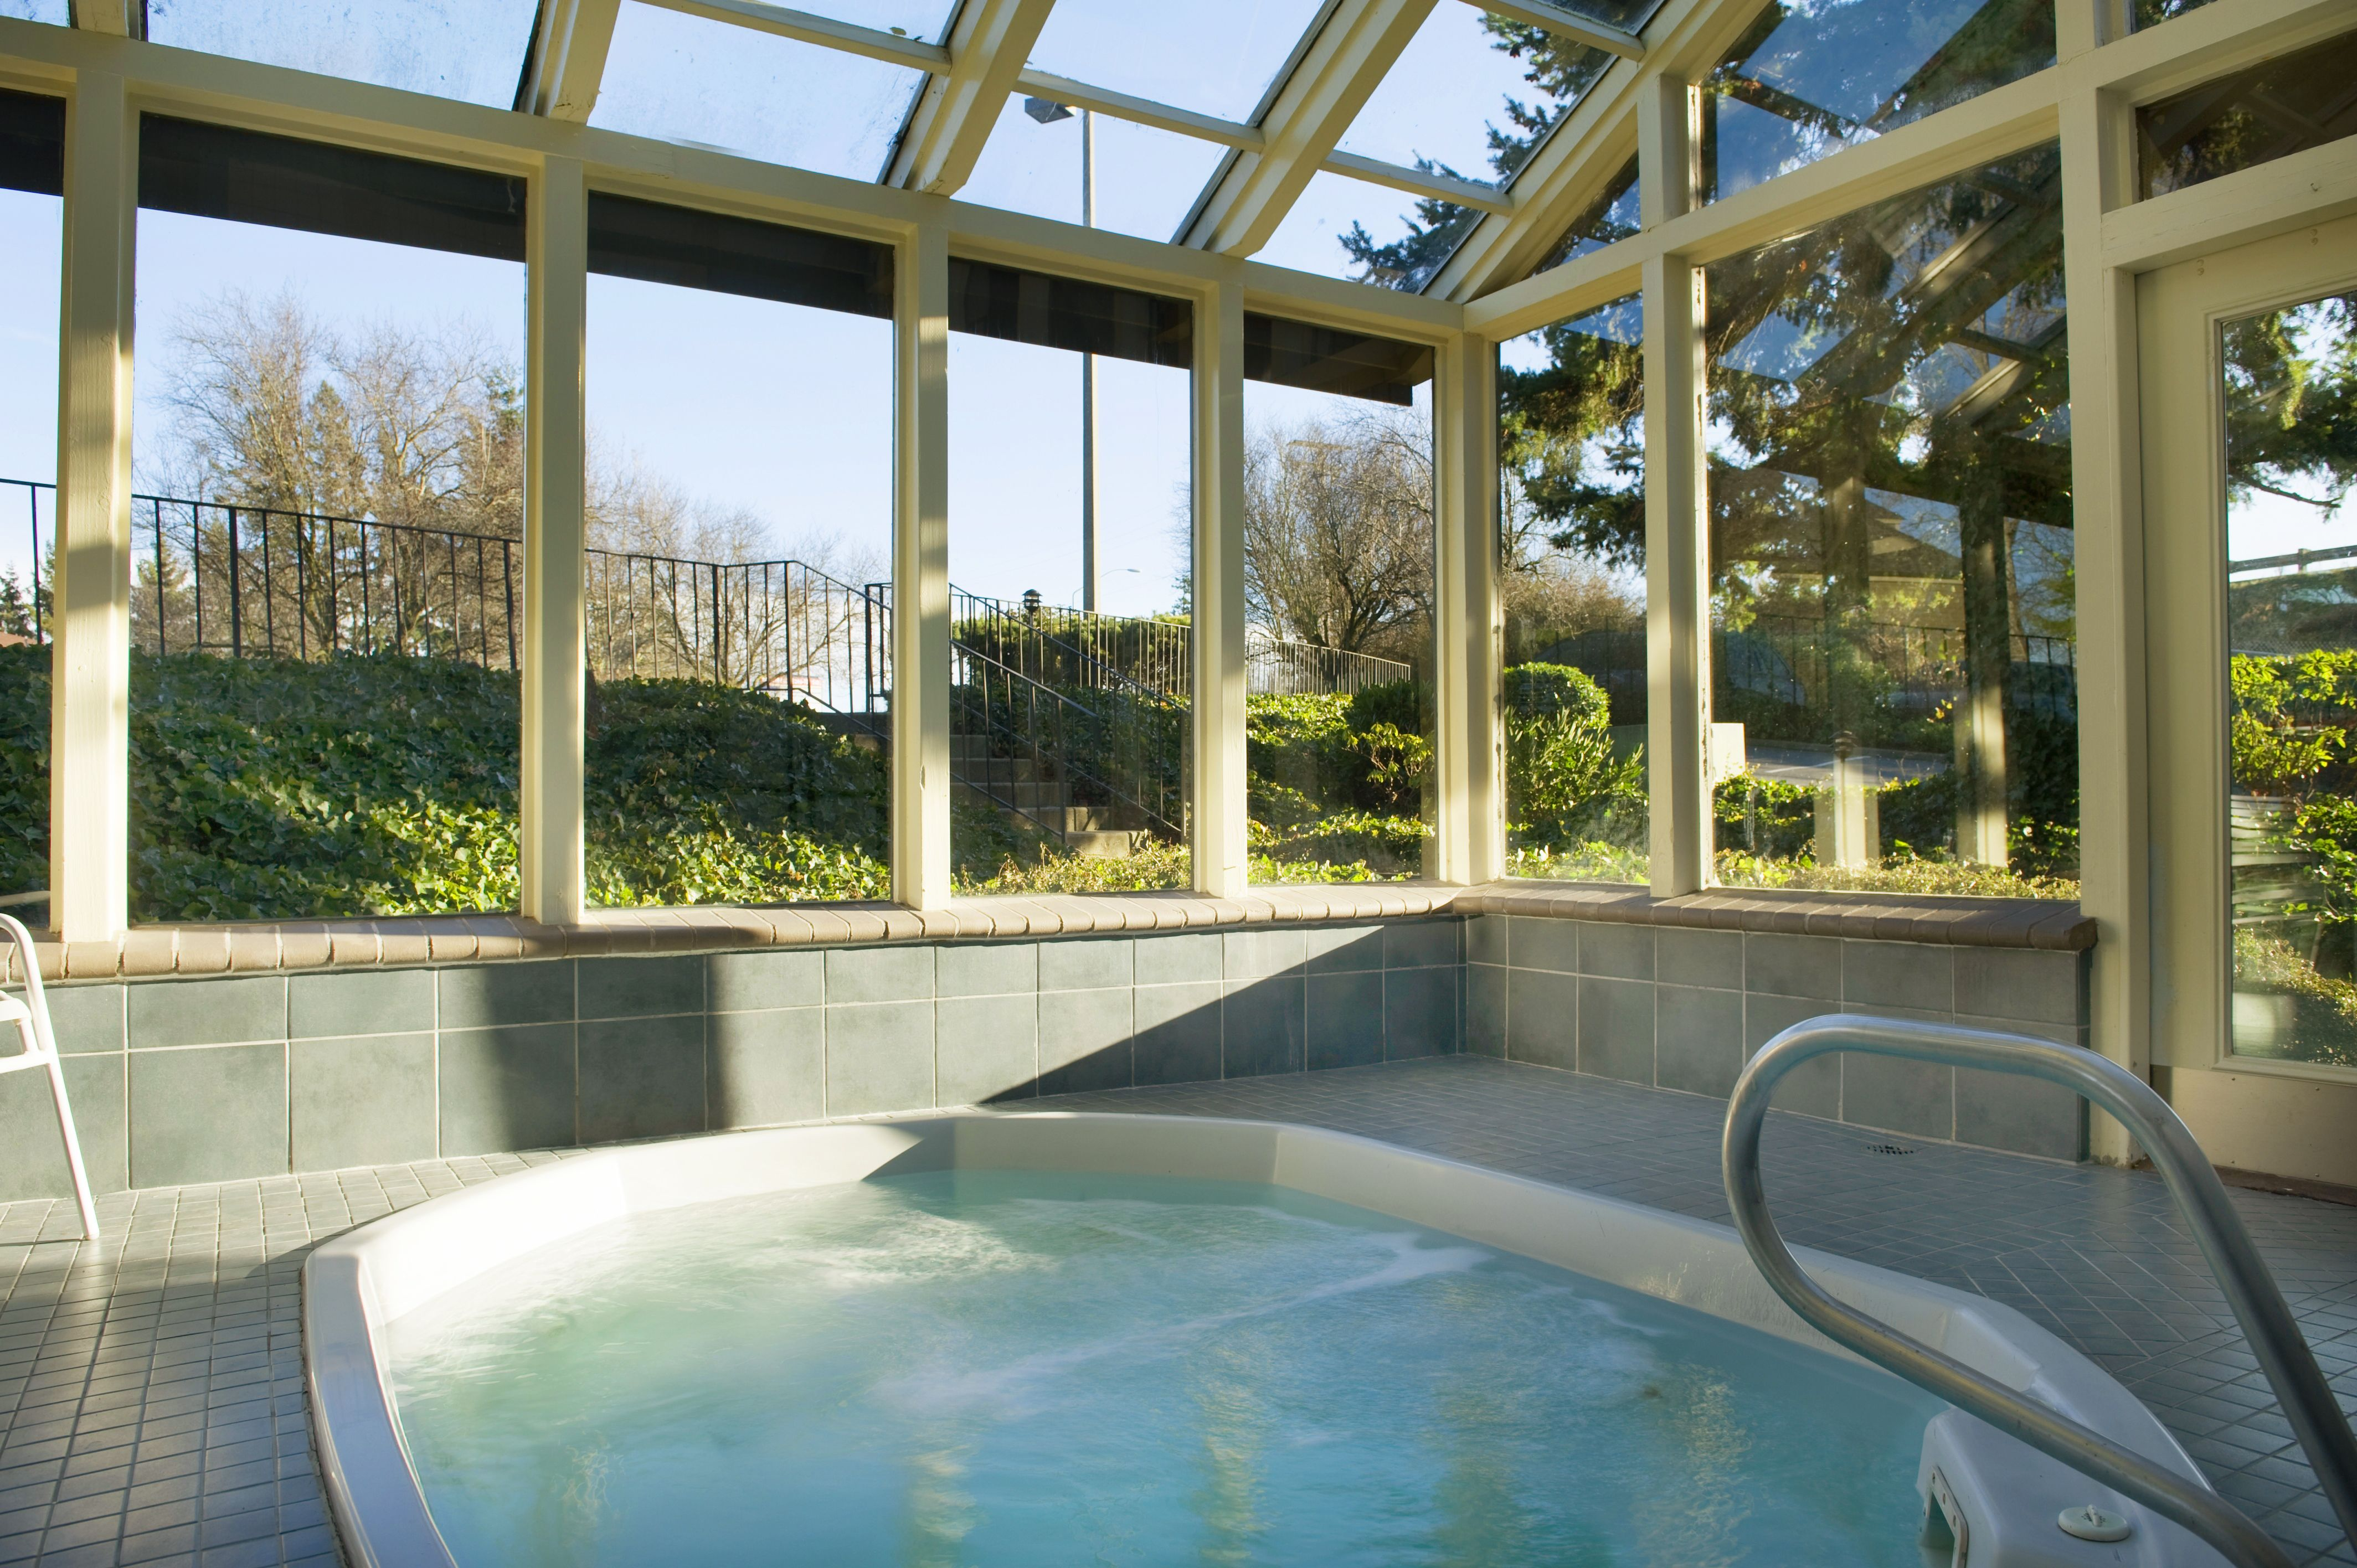 vista hot breckenridge tub rentals bella enclosed house covered print ave lincoln gallery main